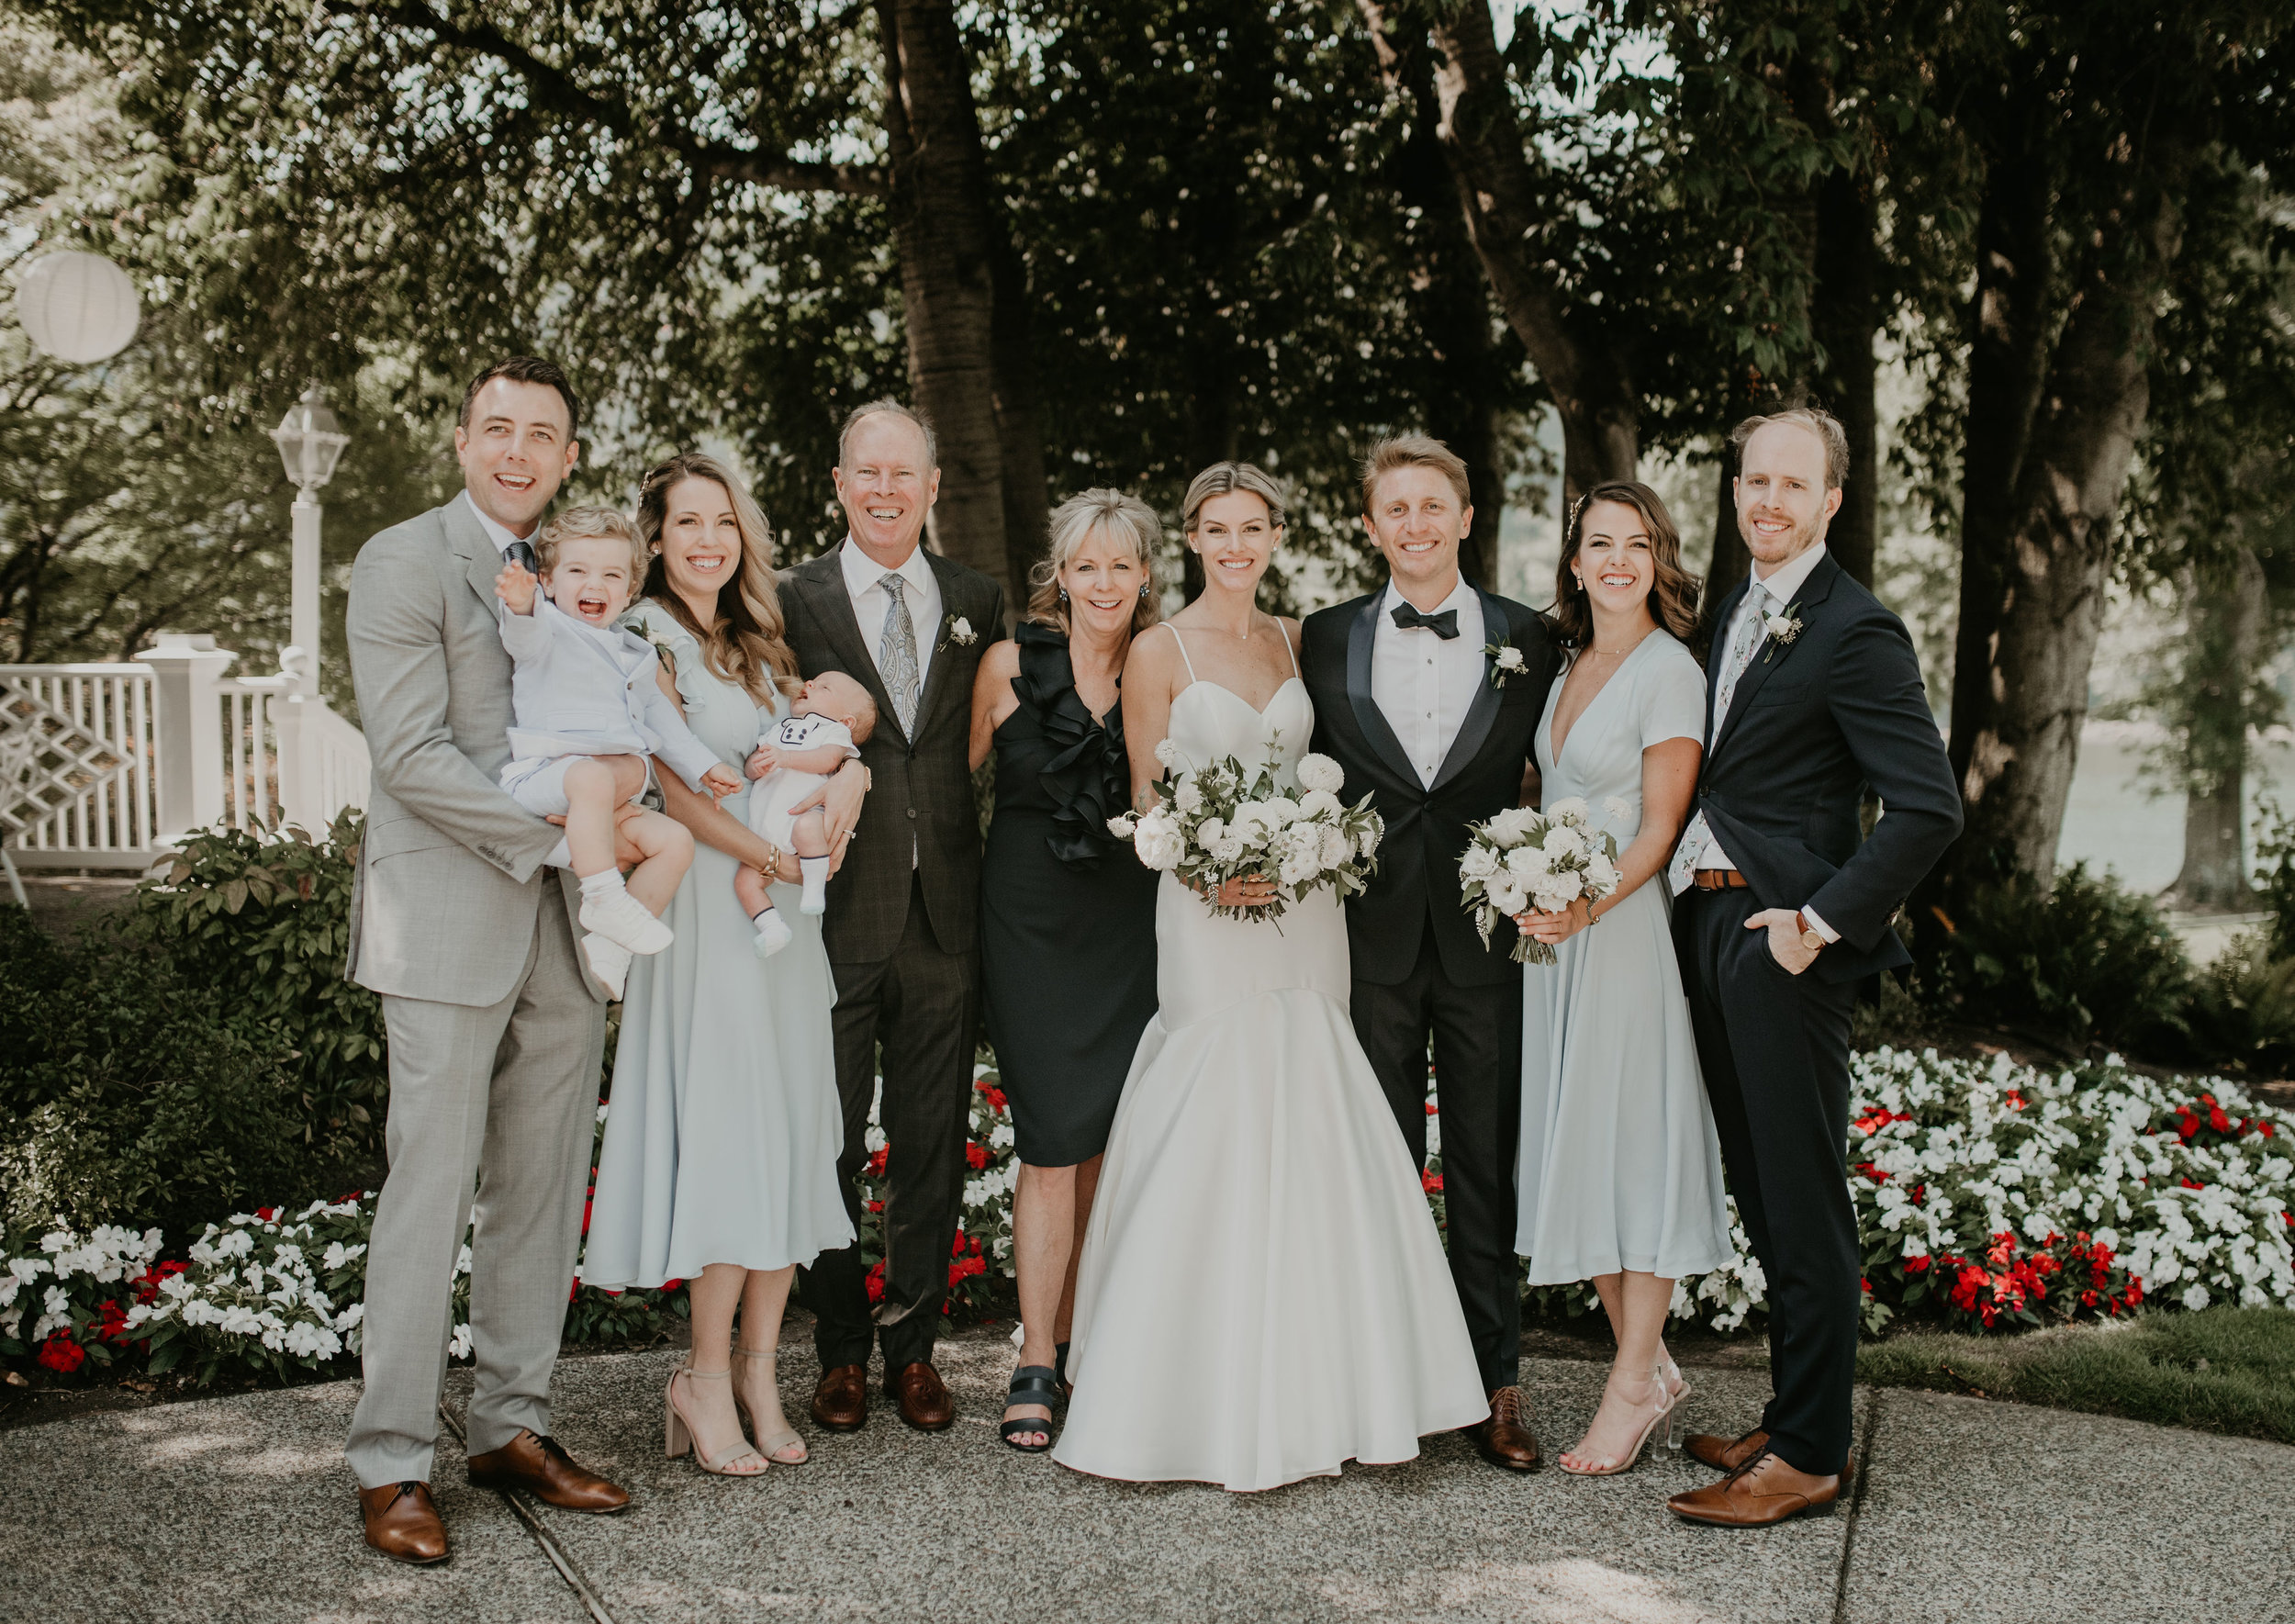 Bridalbliss.com | Portland Wedding | Oregon Event Planning and Design | Feather and North Photography